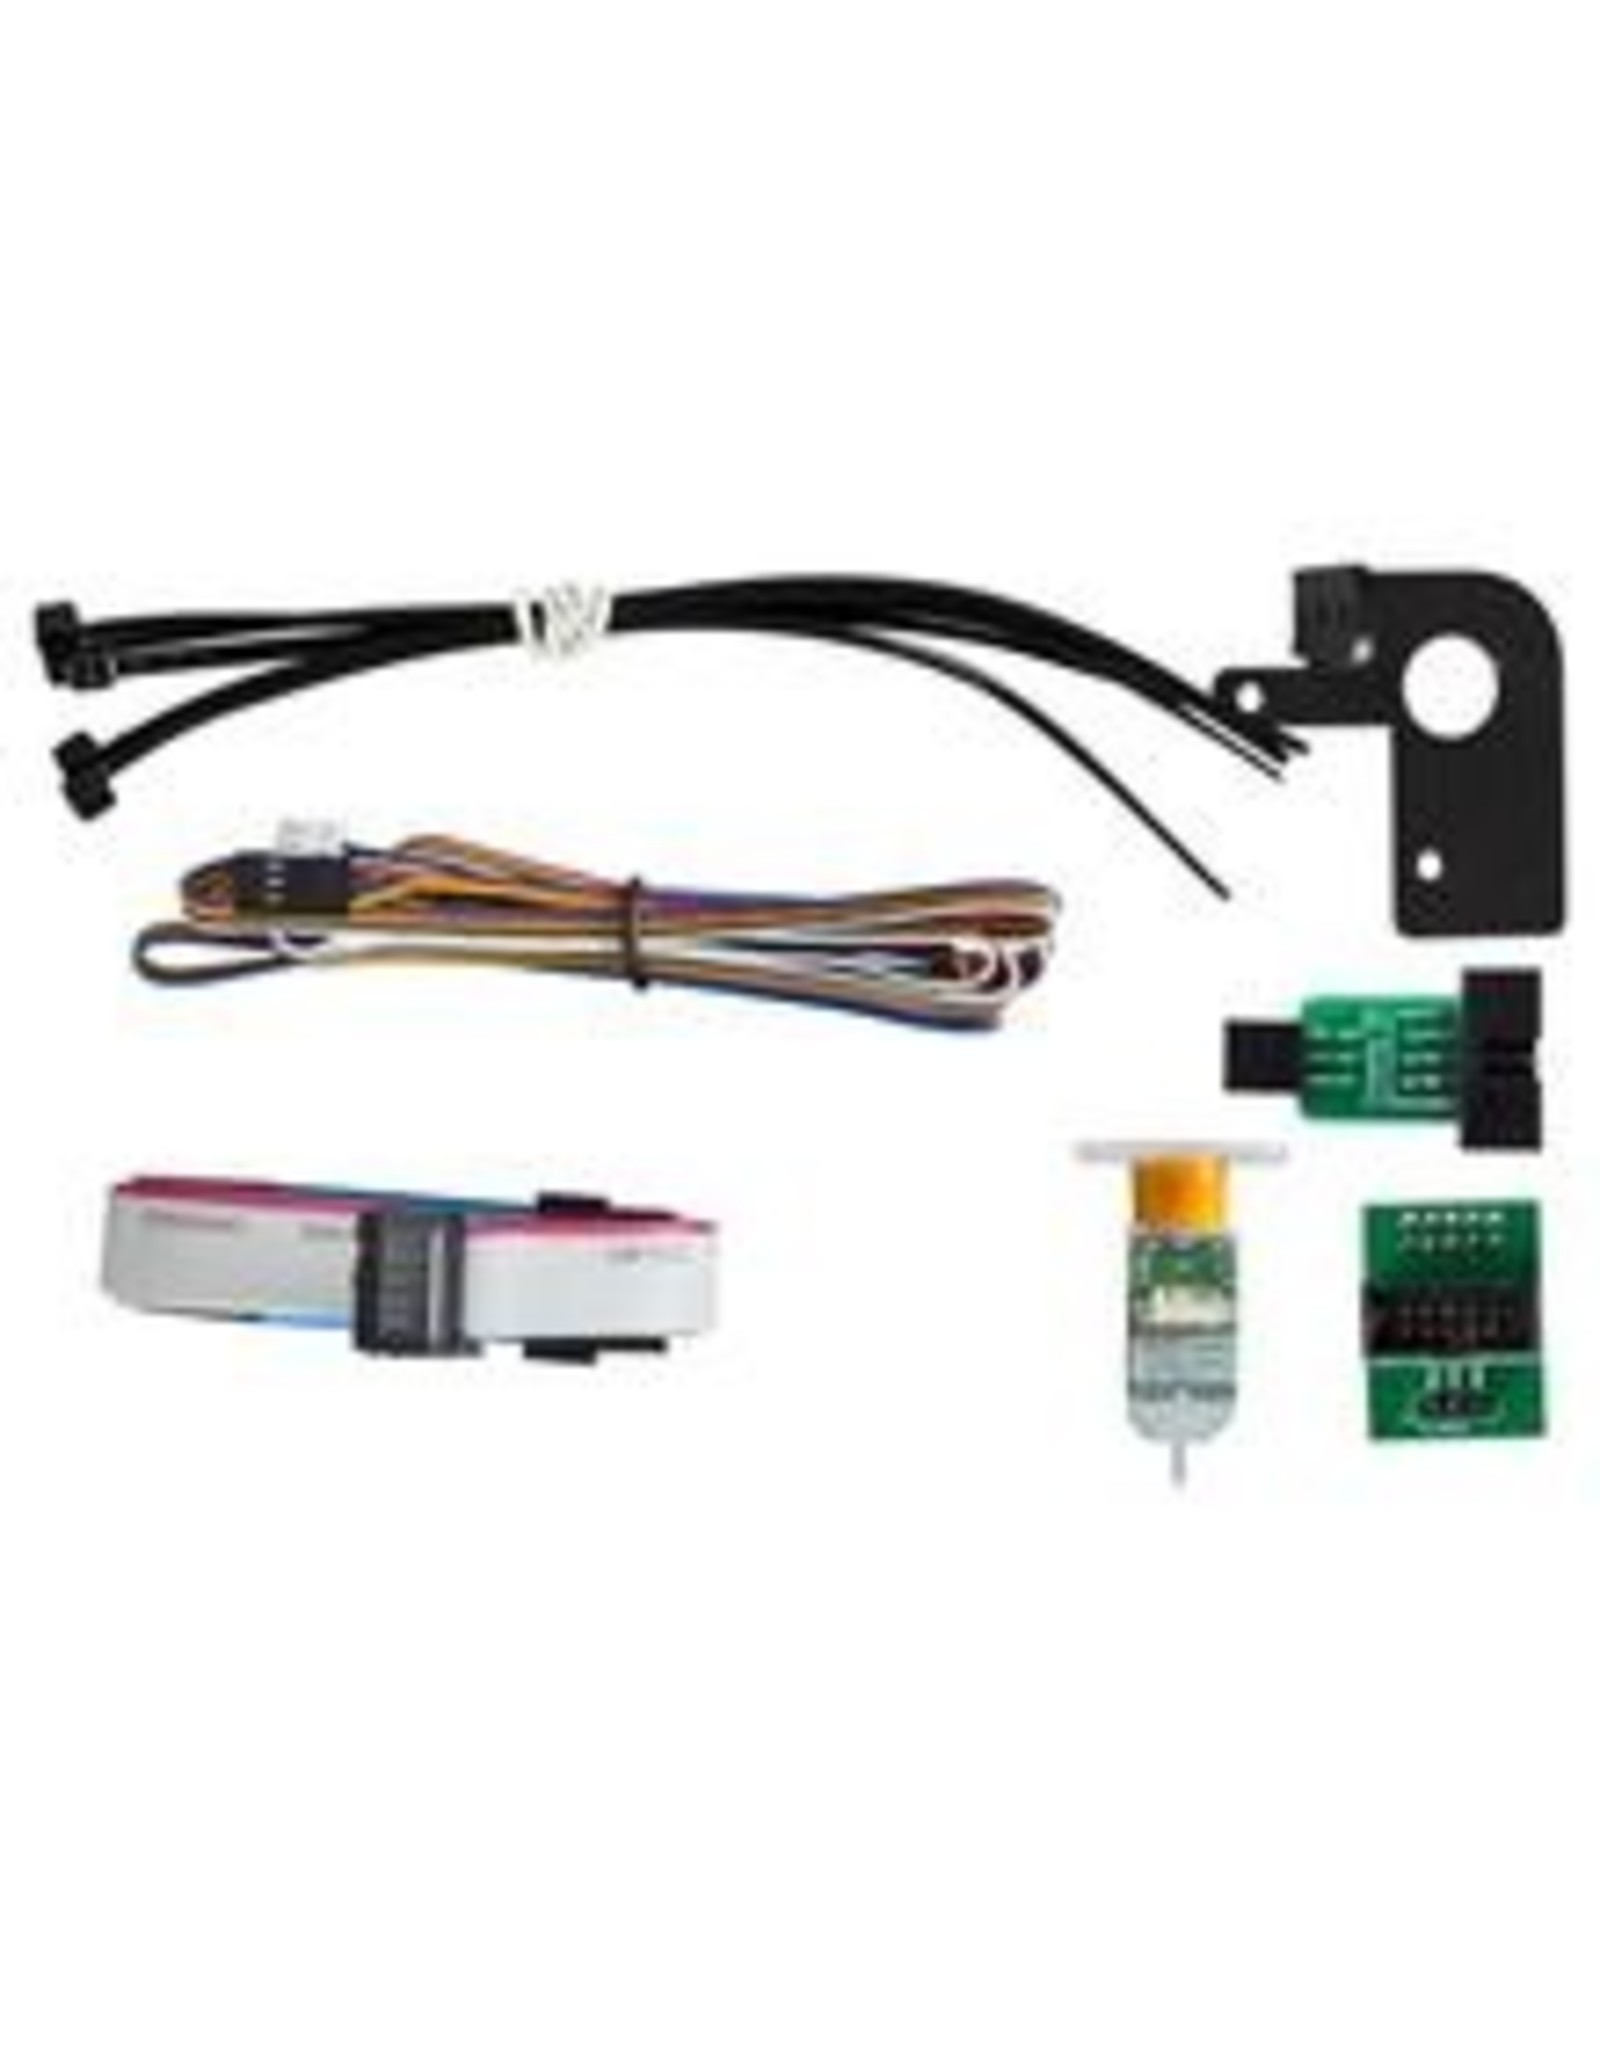 Creality/Ender Creality 3D BLTouch Auto Bed Leveling Sensor For CR / Ender Series